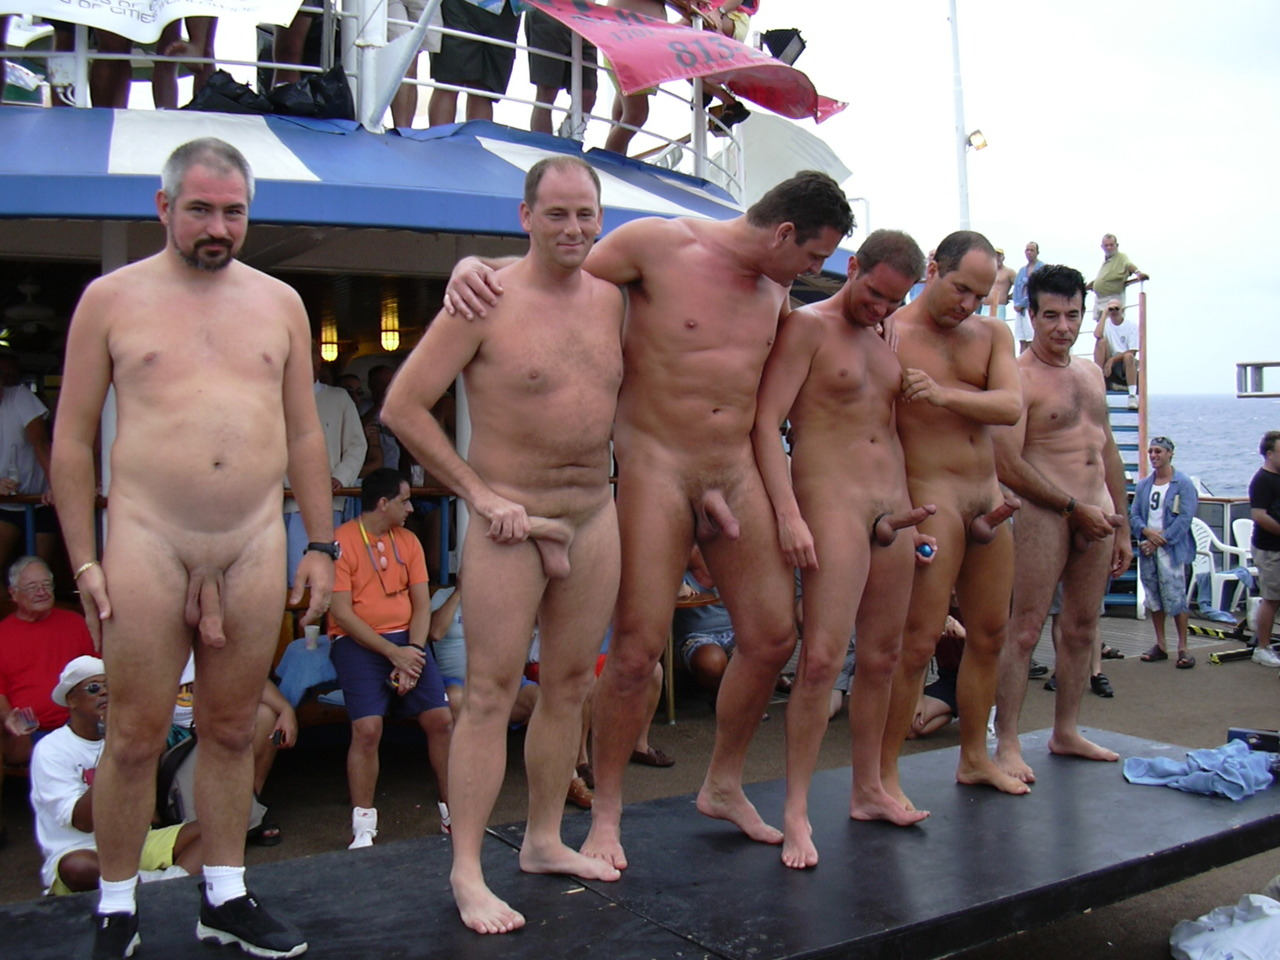 Wow nudist erections hot, love